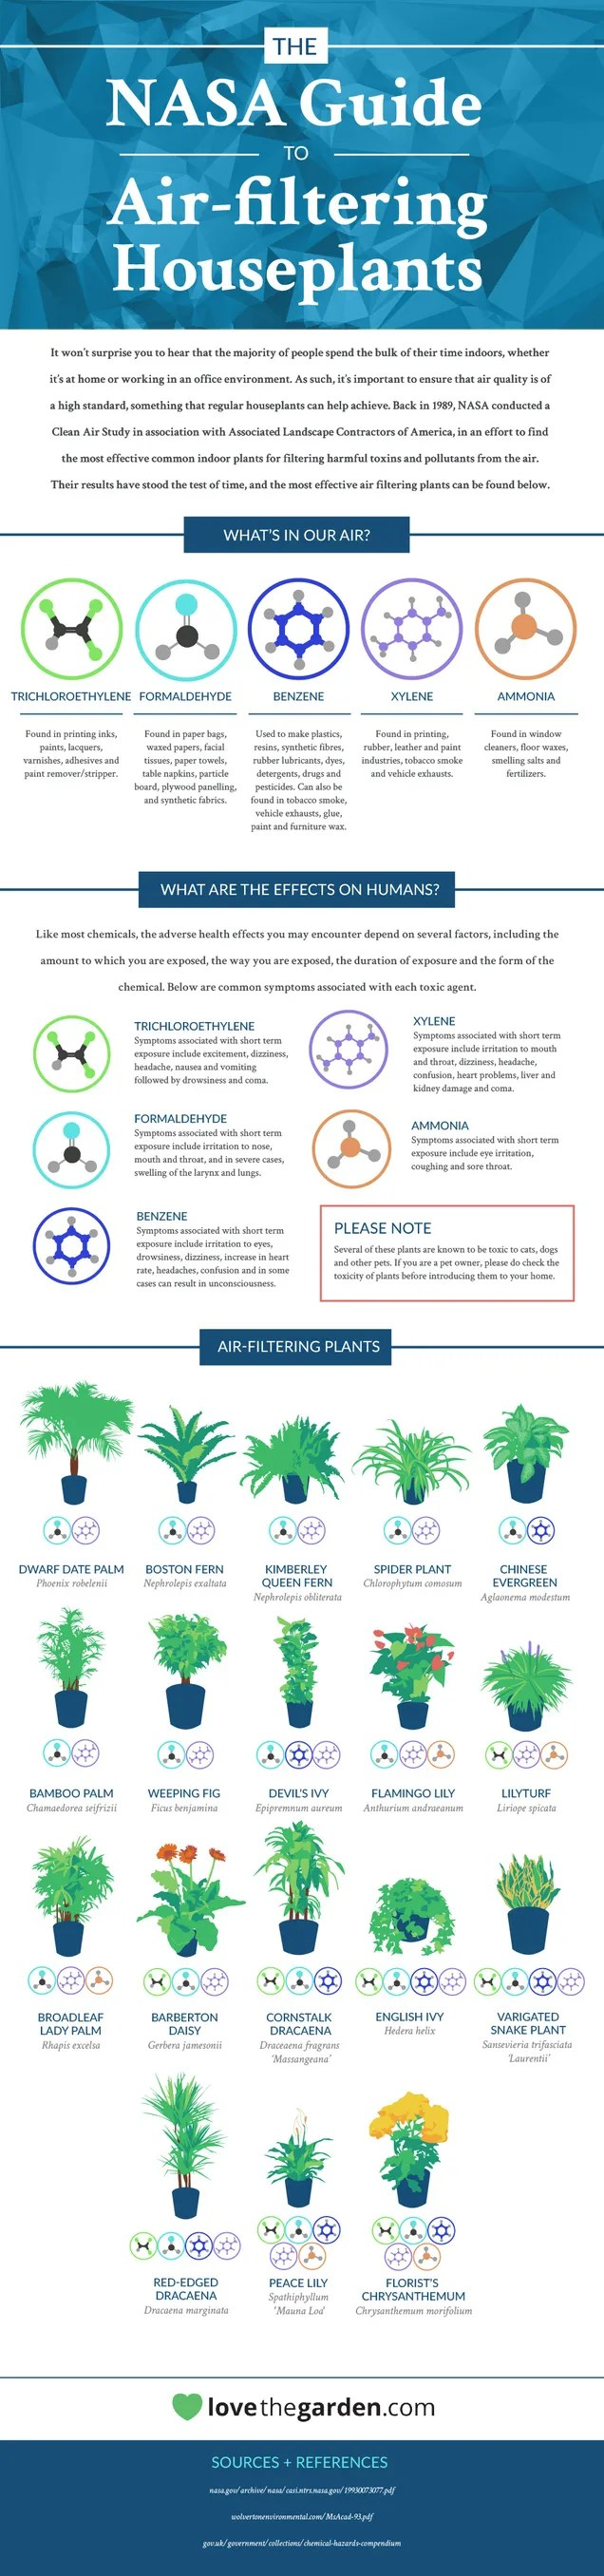 This Graphic Shows the Best Air-Cleaning Plants, According to NASA